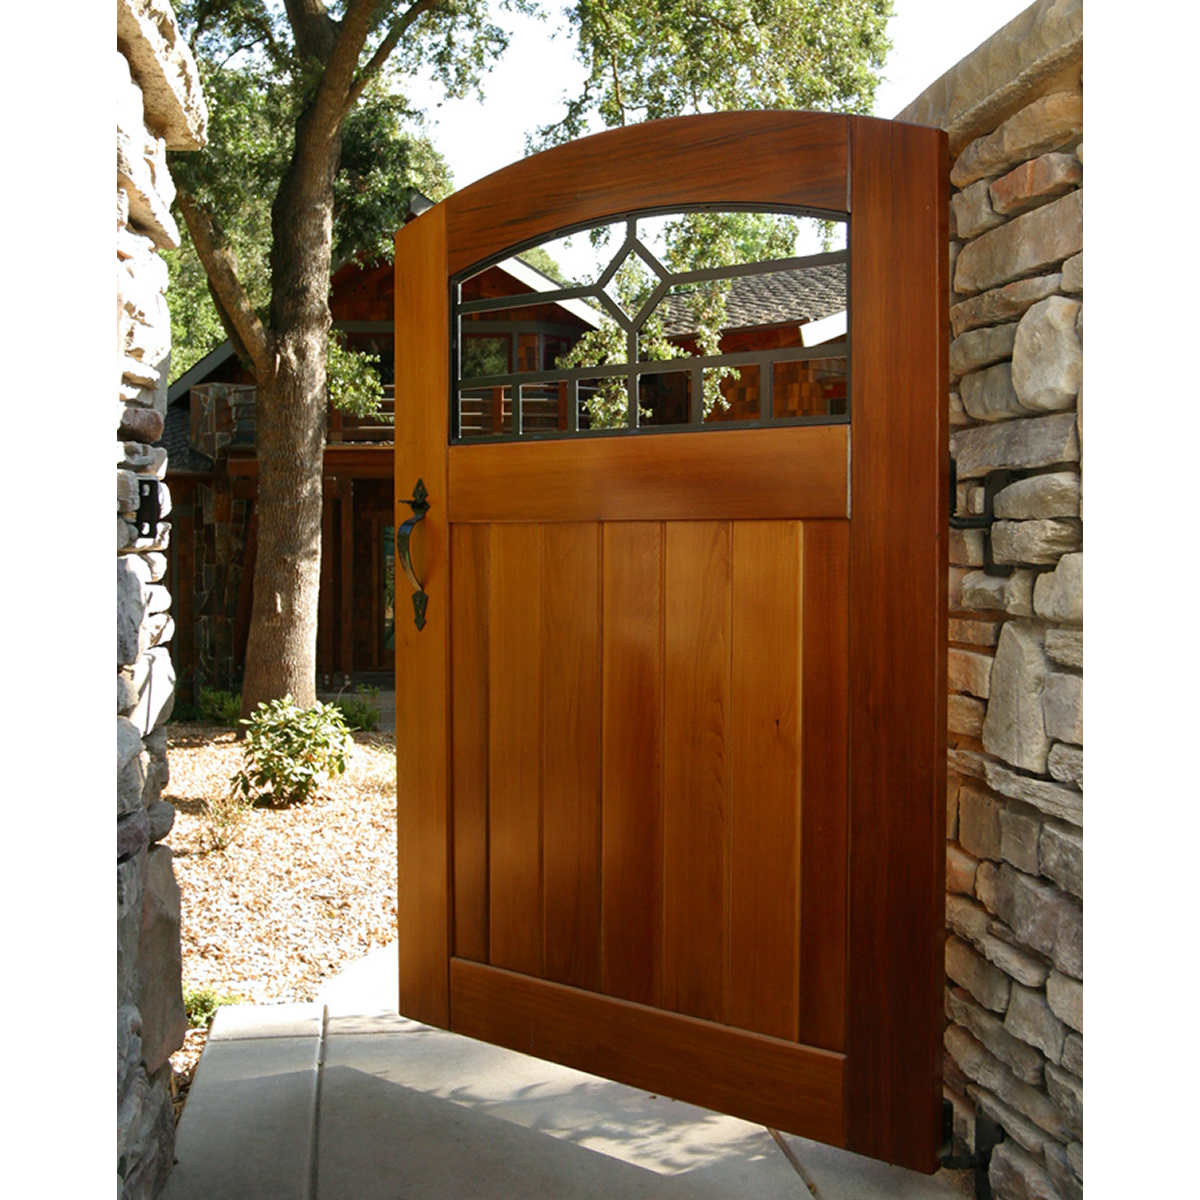 Gates costco craftsman mission diamond side yard wood gate eventelaan Image collections